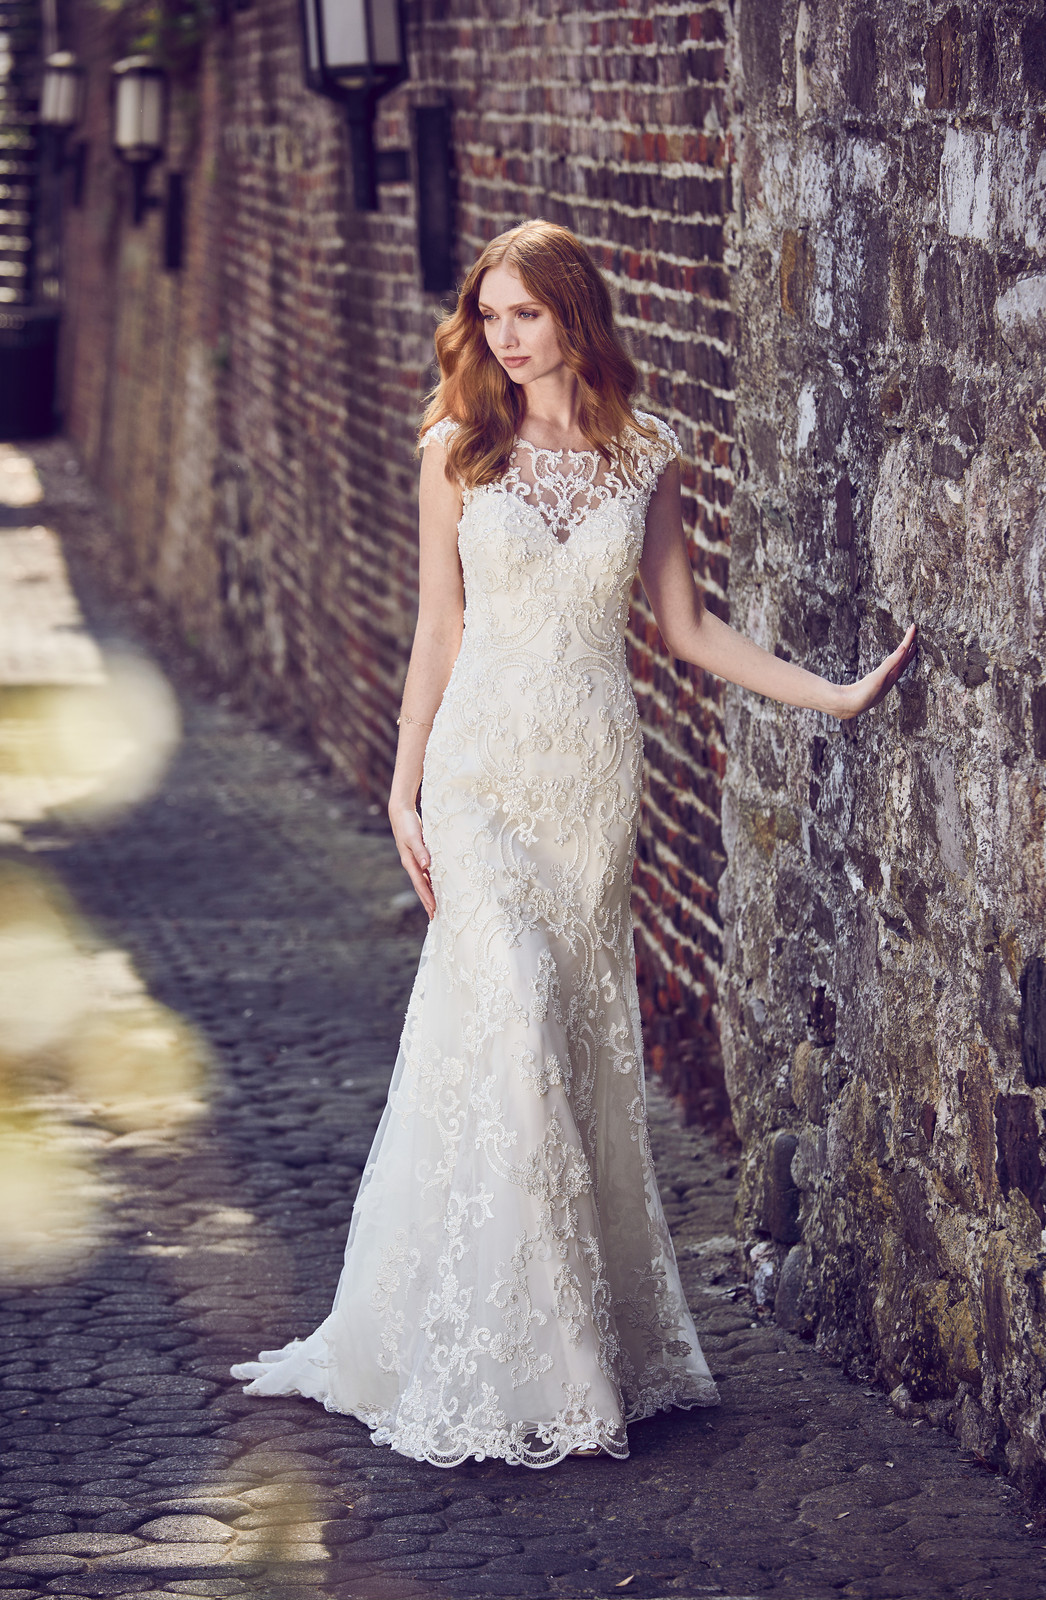 ed175052e326 This elegant fit-and-flare wedding dress features a tulle overlay of beaded  lace motifs